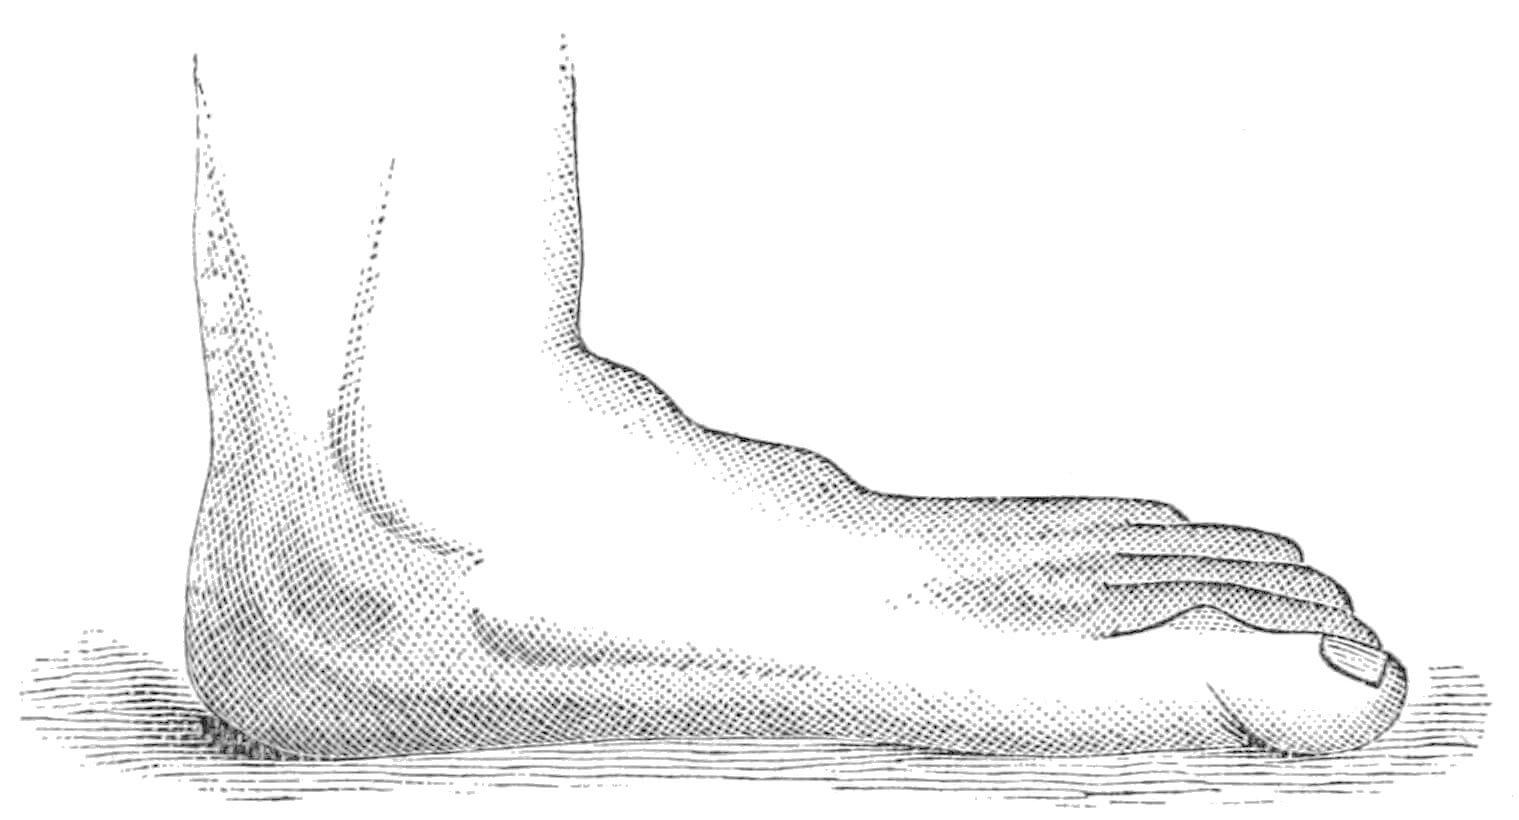 psm_v24_d672_splay_or_flat_foot